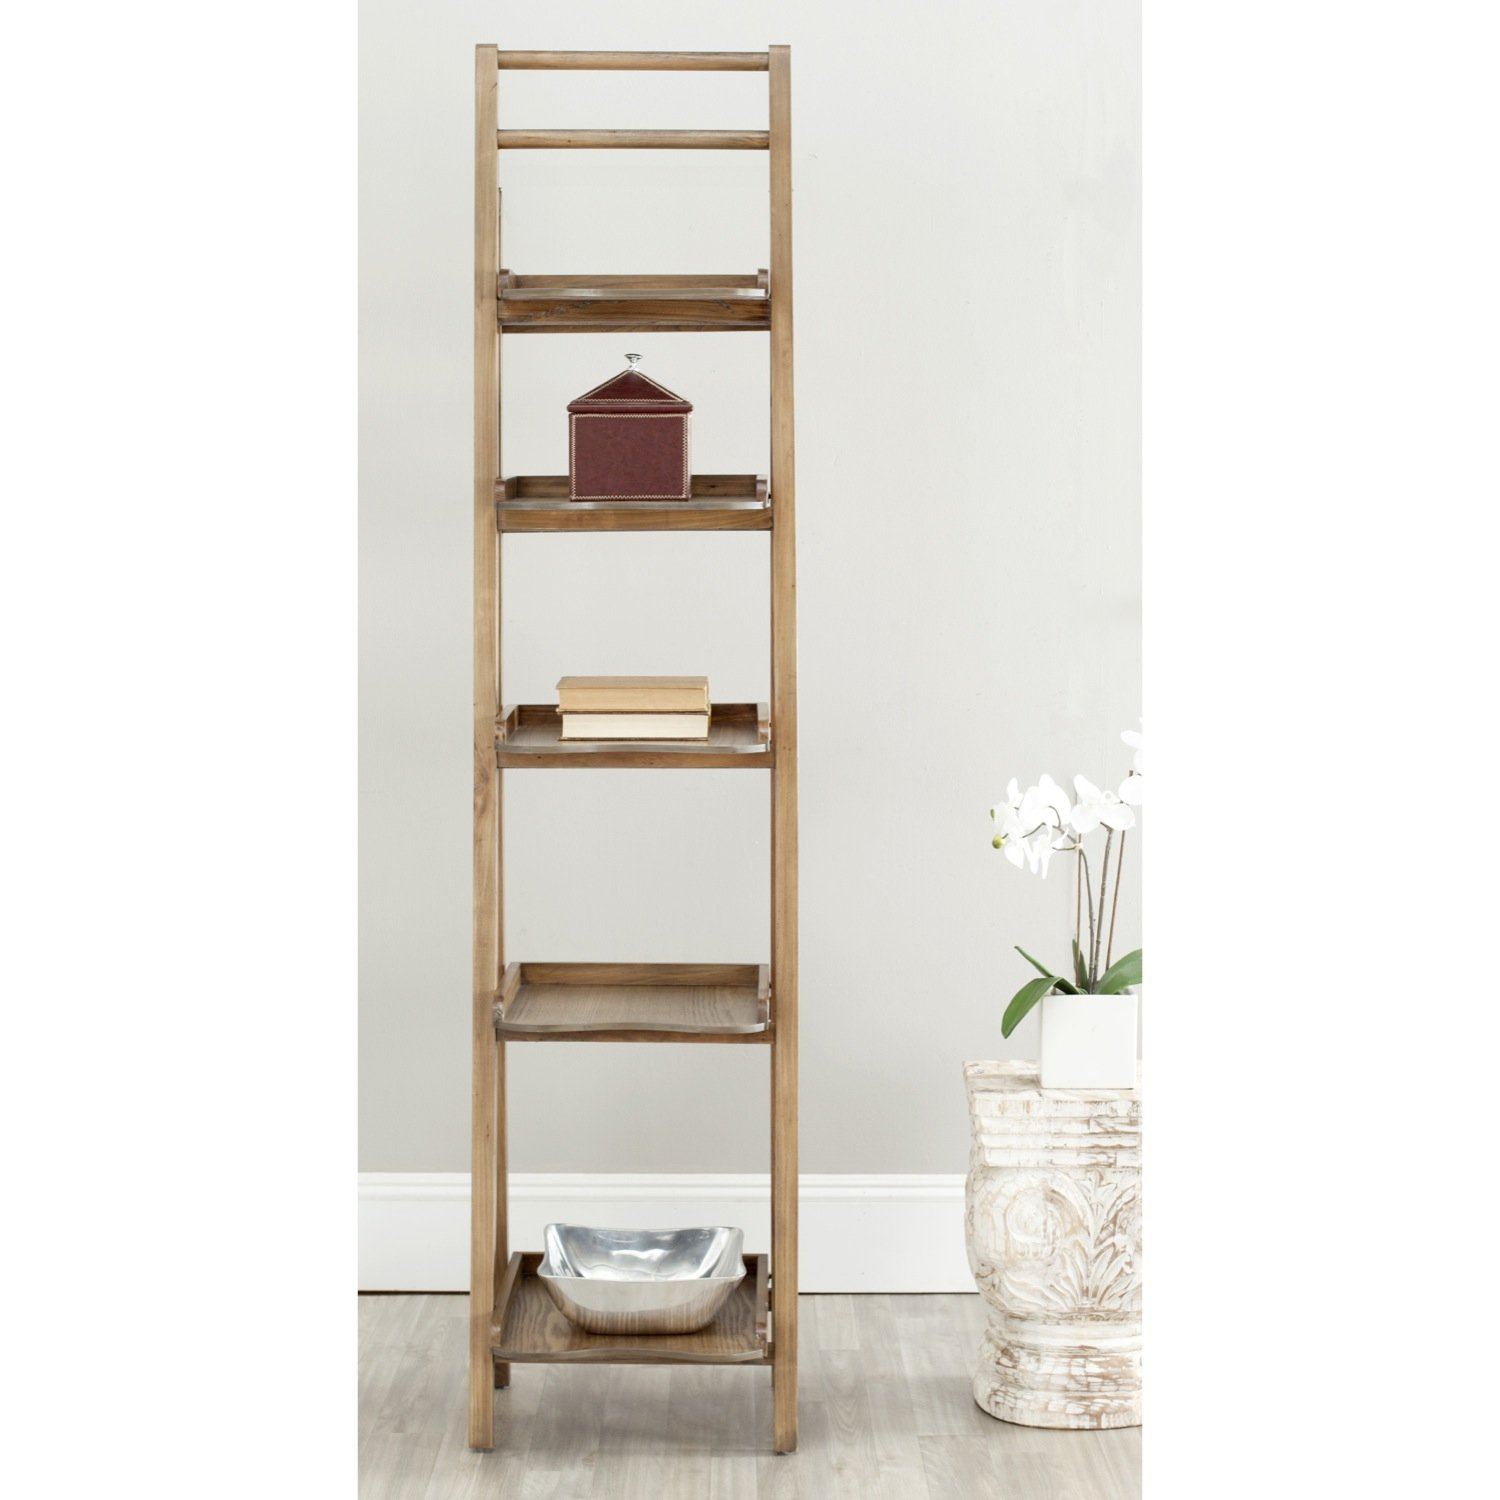 Safavieh American Homes Collection Asher Leaning Étagère Bookcase, Oak